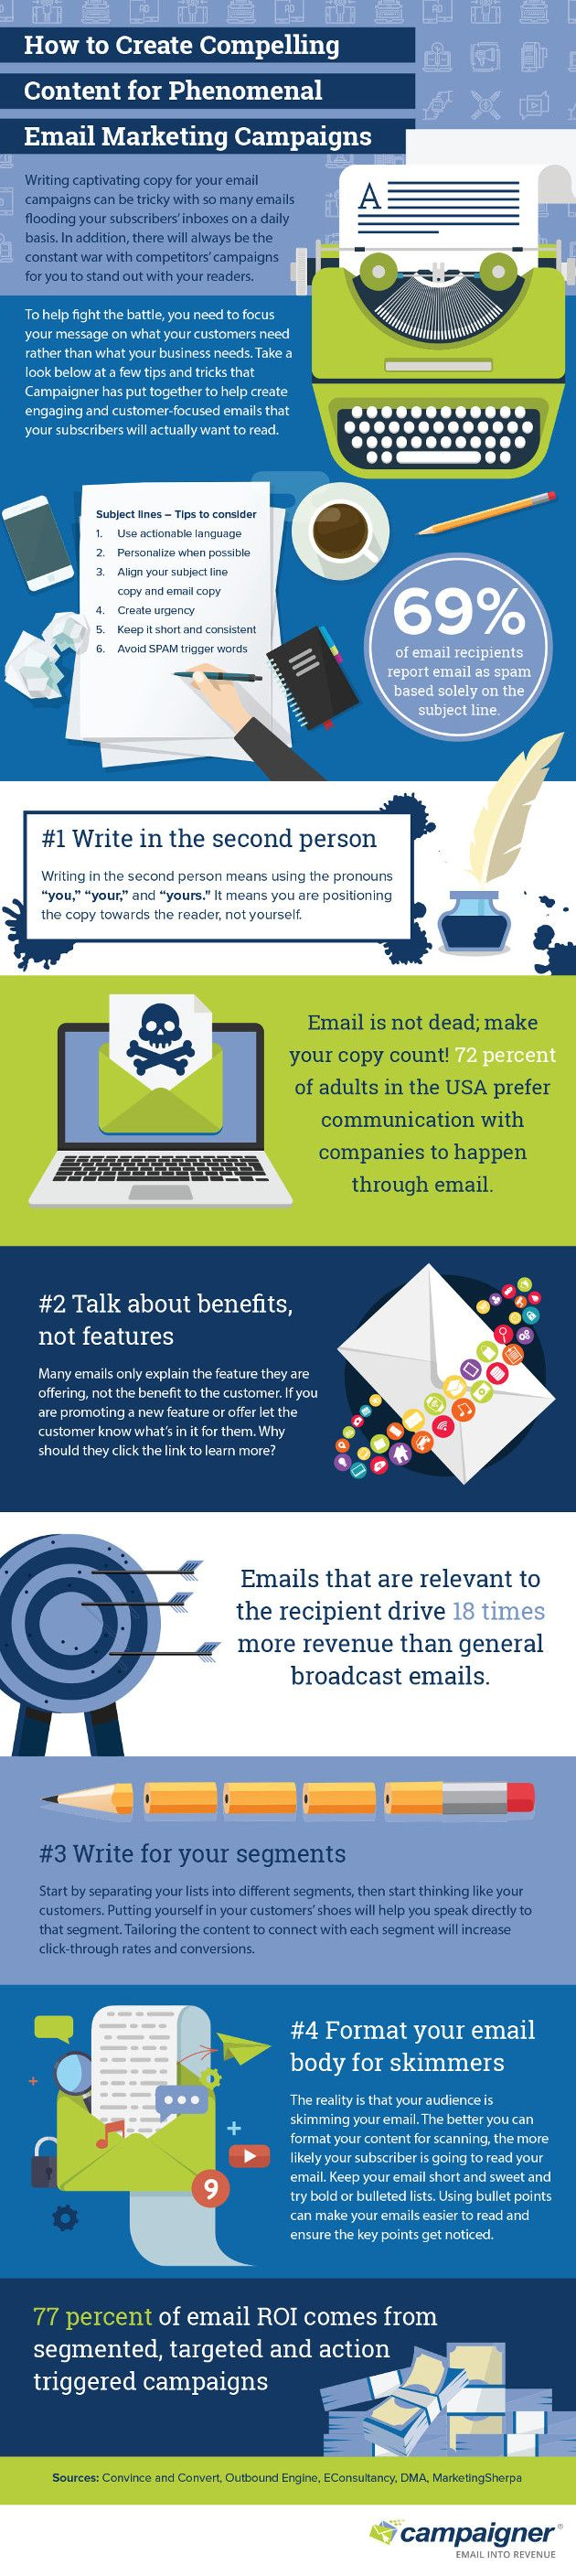 How to Write Compelling Email Content Customers Want to Read | Infographic